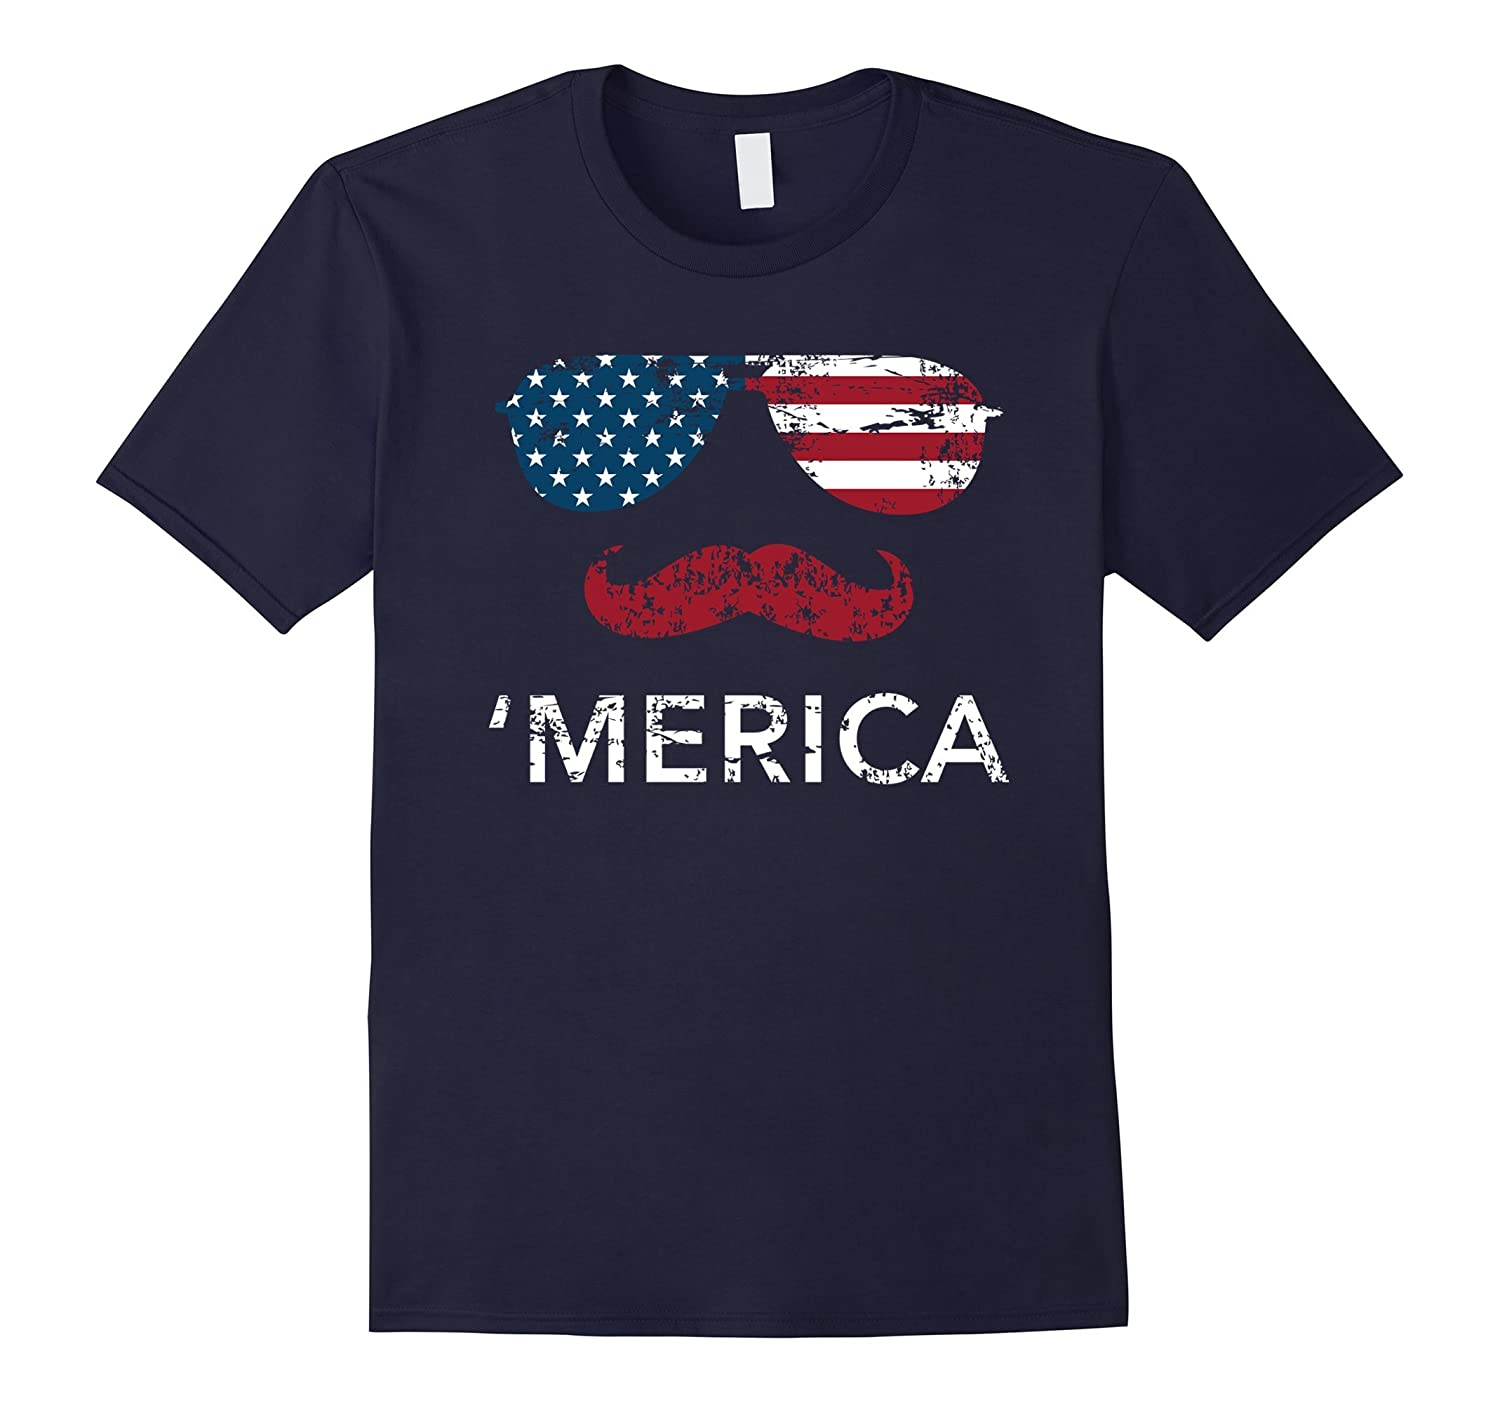 'Merica sunglasses mustache USA Patriotic 4th of July shirt-TH